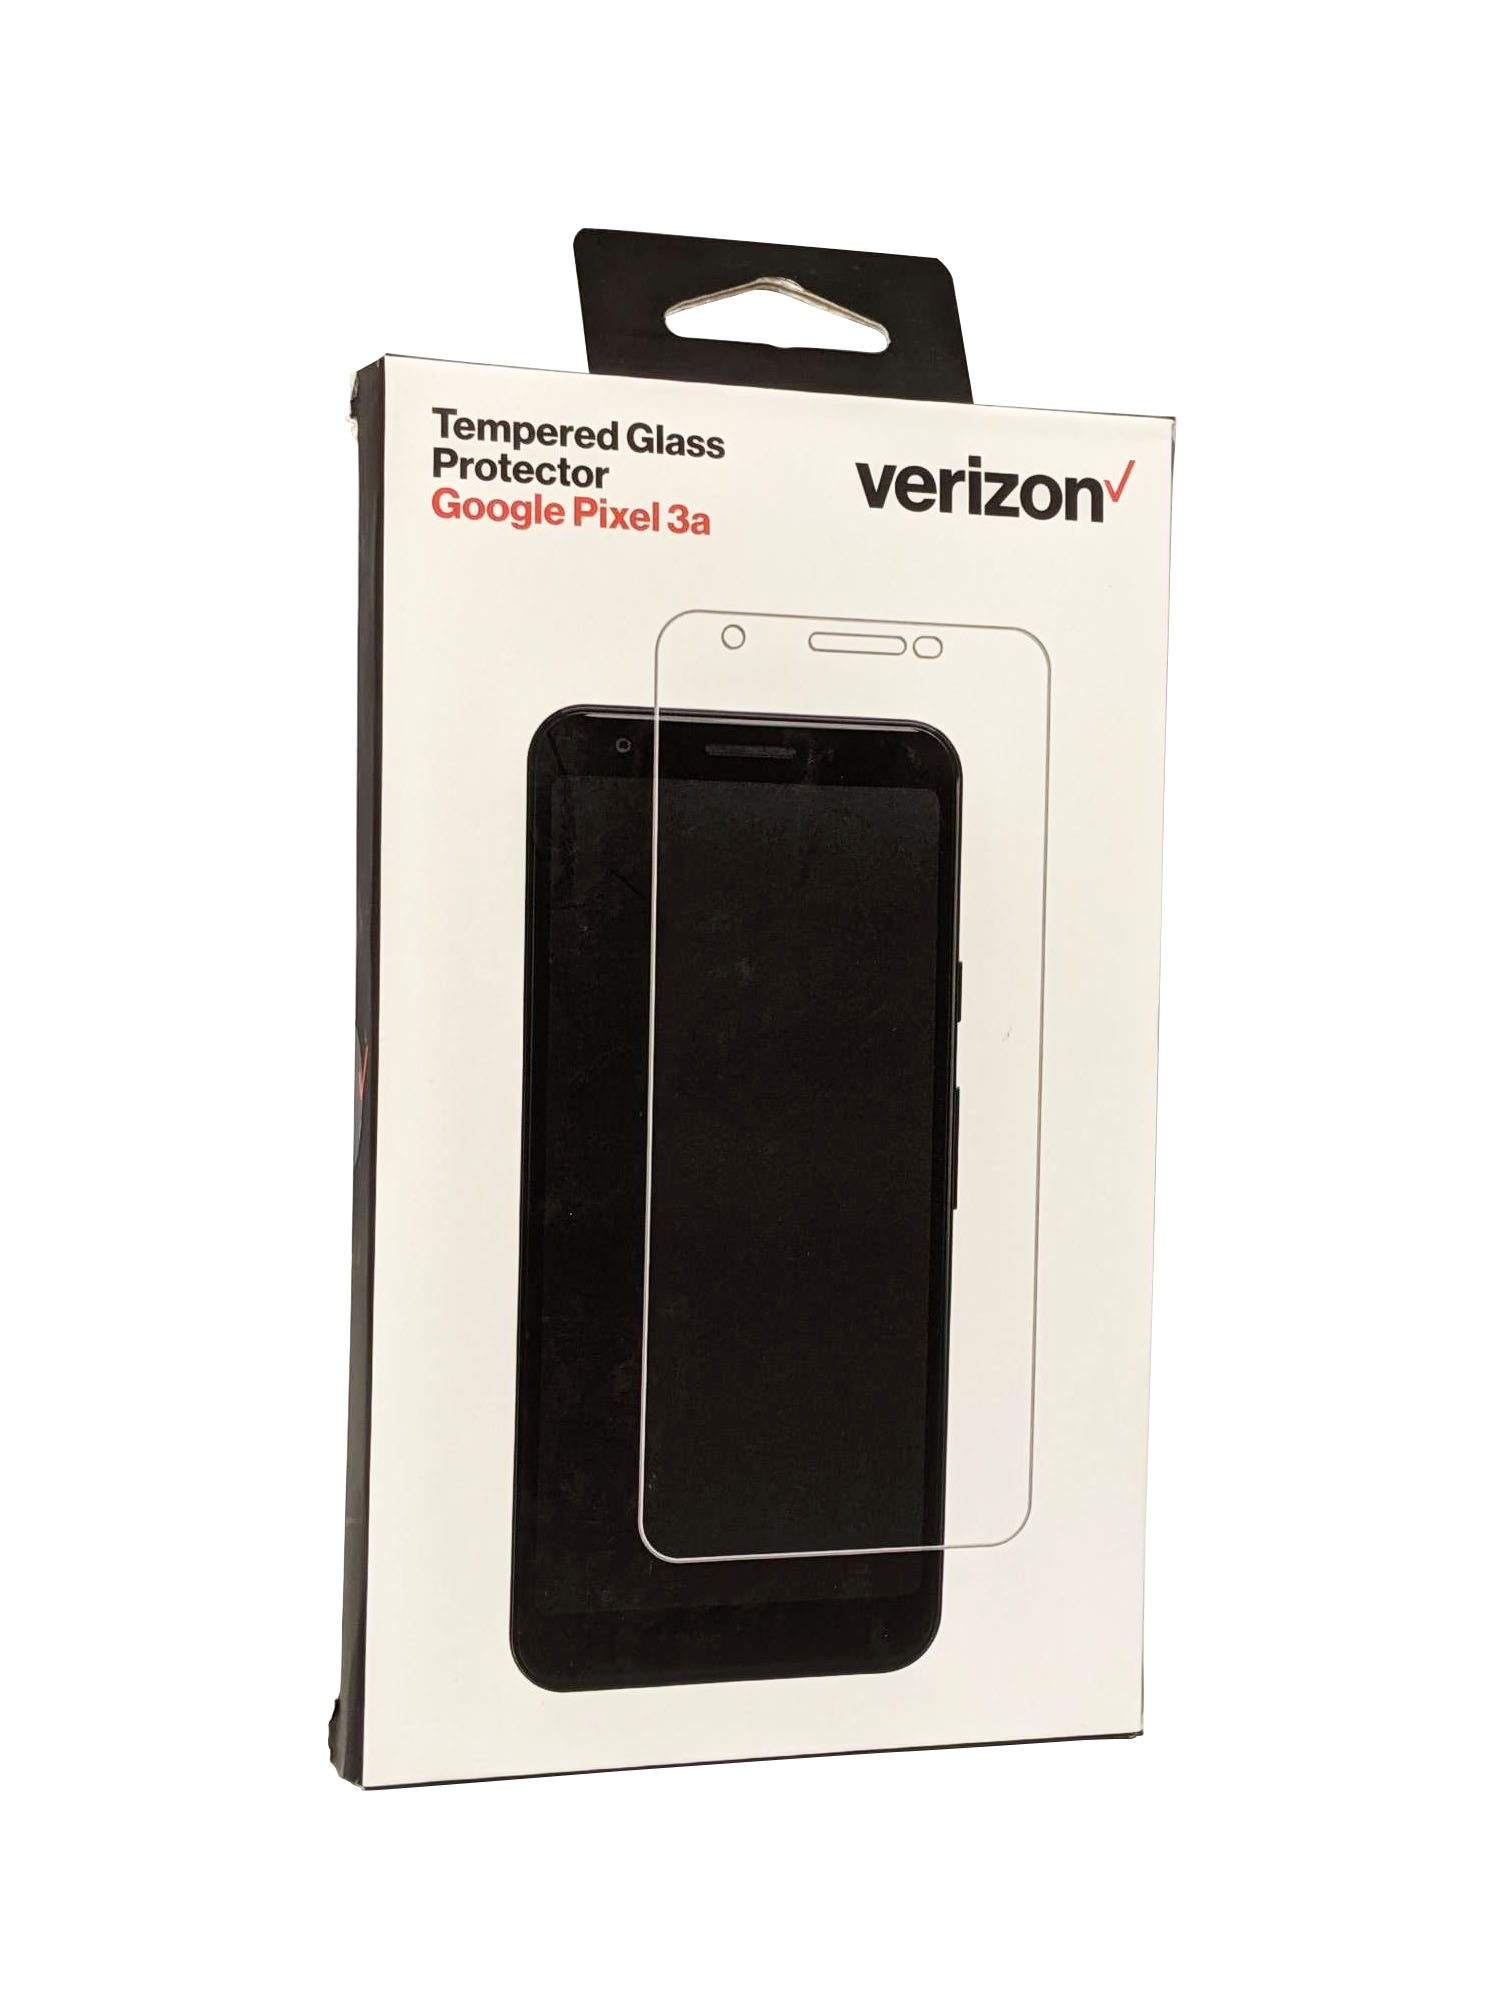 Verizon Tempered Glass Screen Protector for Pixel 3a - Clear